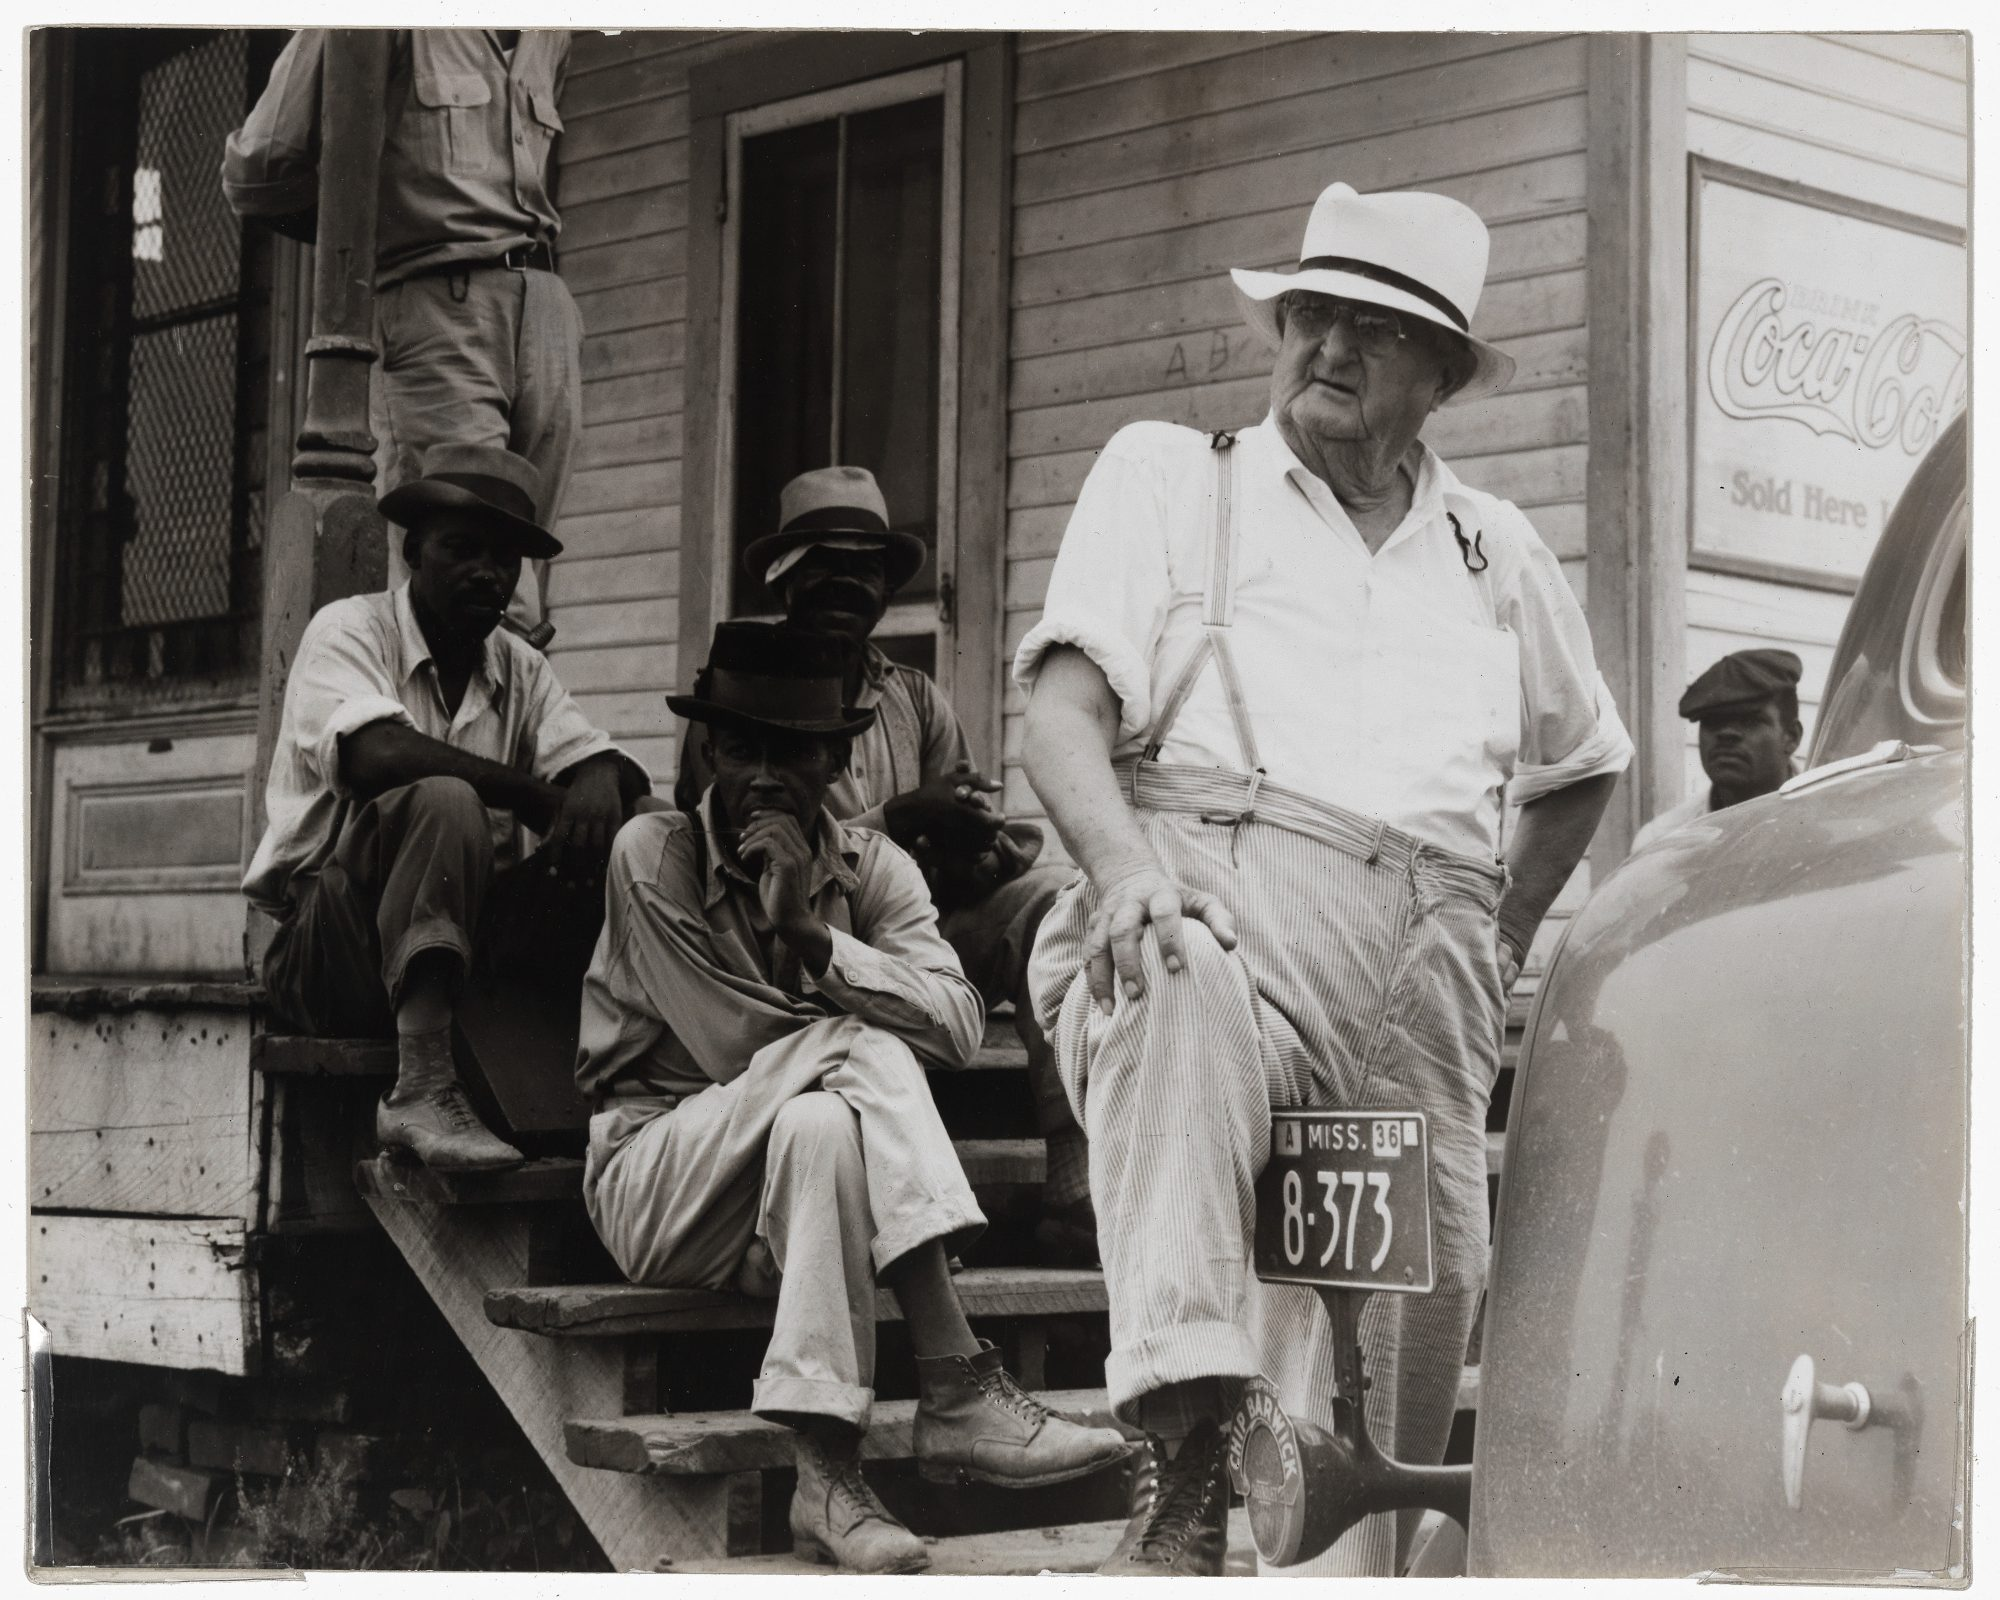 Dorothea Lange (American, 1895–1965) Plantation owner, Mississippi Delta, near Clarksdale, Miss., June 1936. Gelatin silver print, 7 1/2 x 9 3/8 in. Museum purchase, Karl E. Weston Memorial Fund, 77.43.12